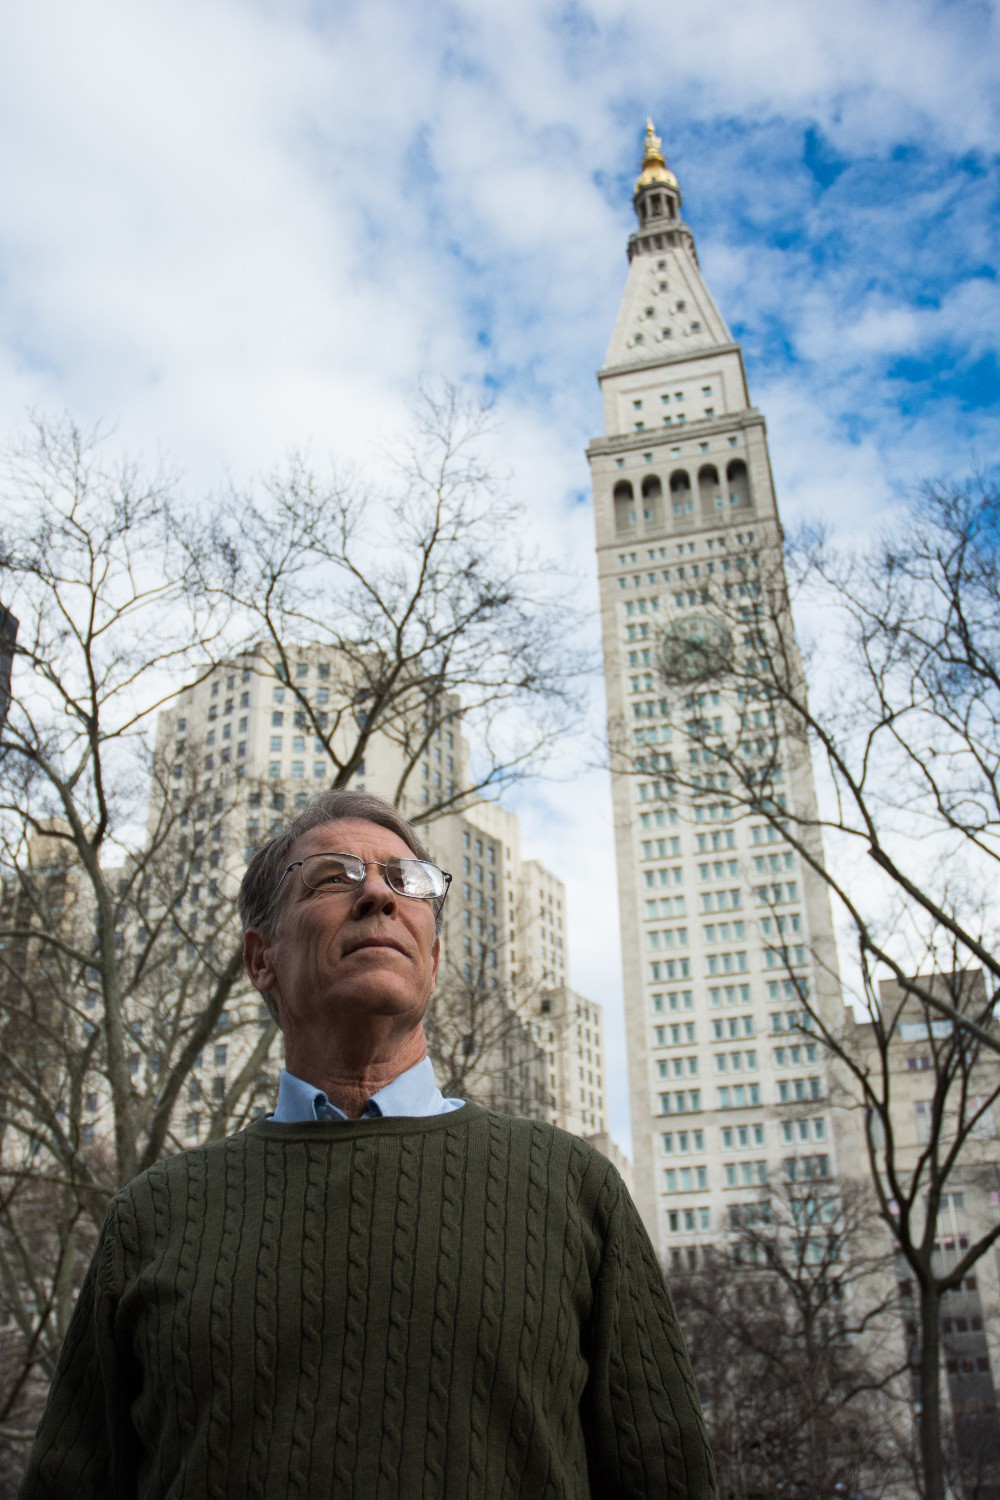 The Met Life tower looms over Robinson and his novel.